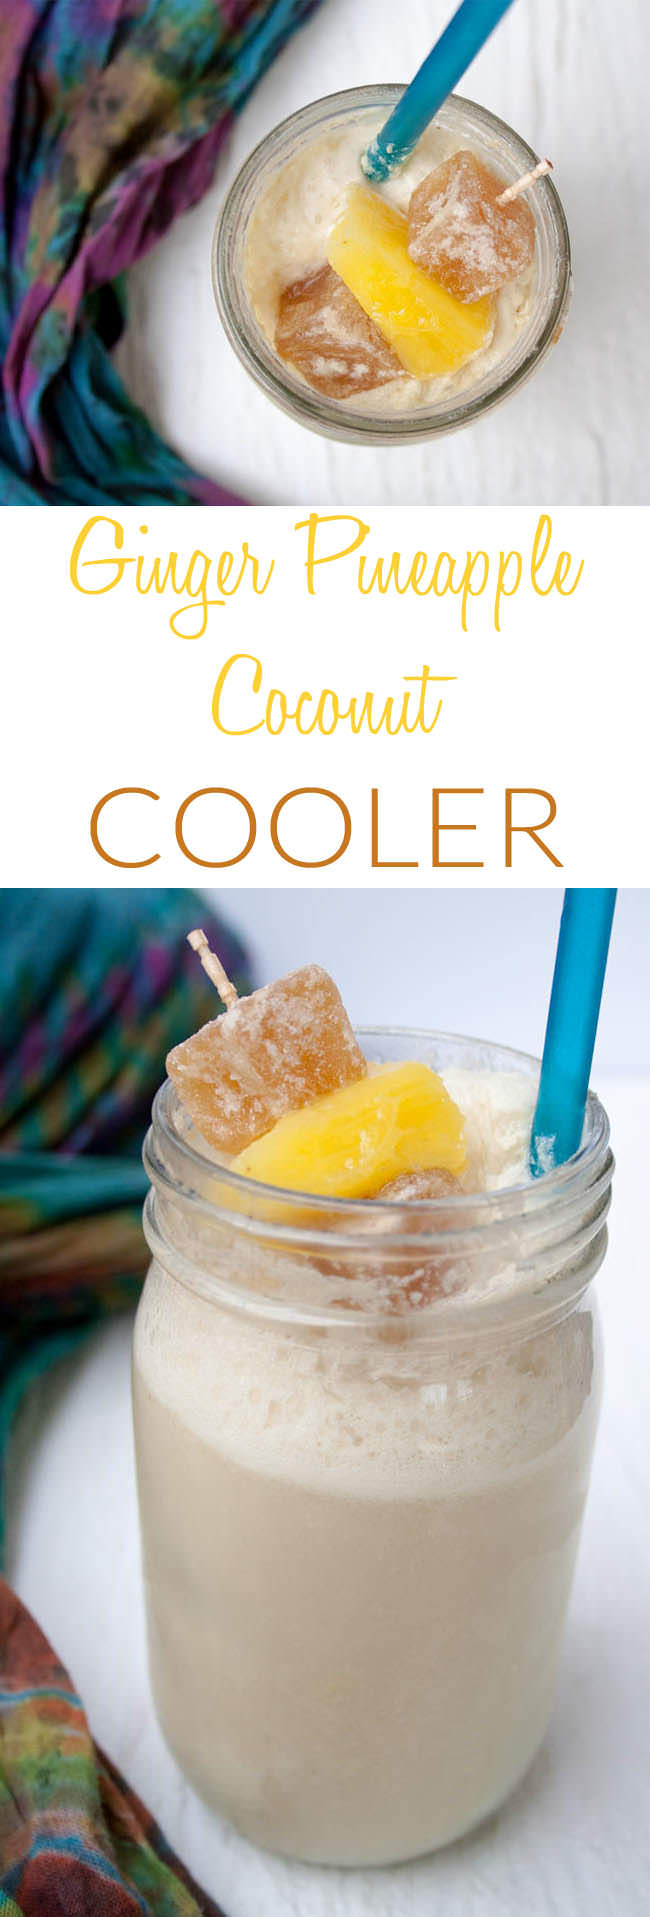 Ginger Pineapple Coconut Cooler collage photo with text